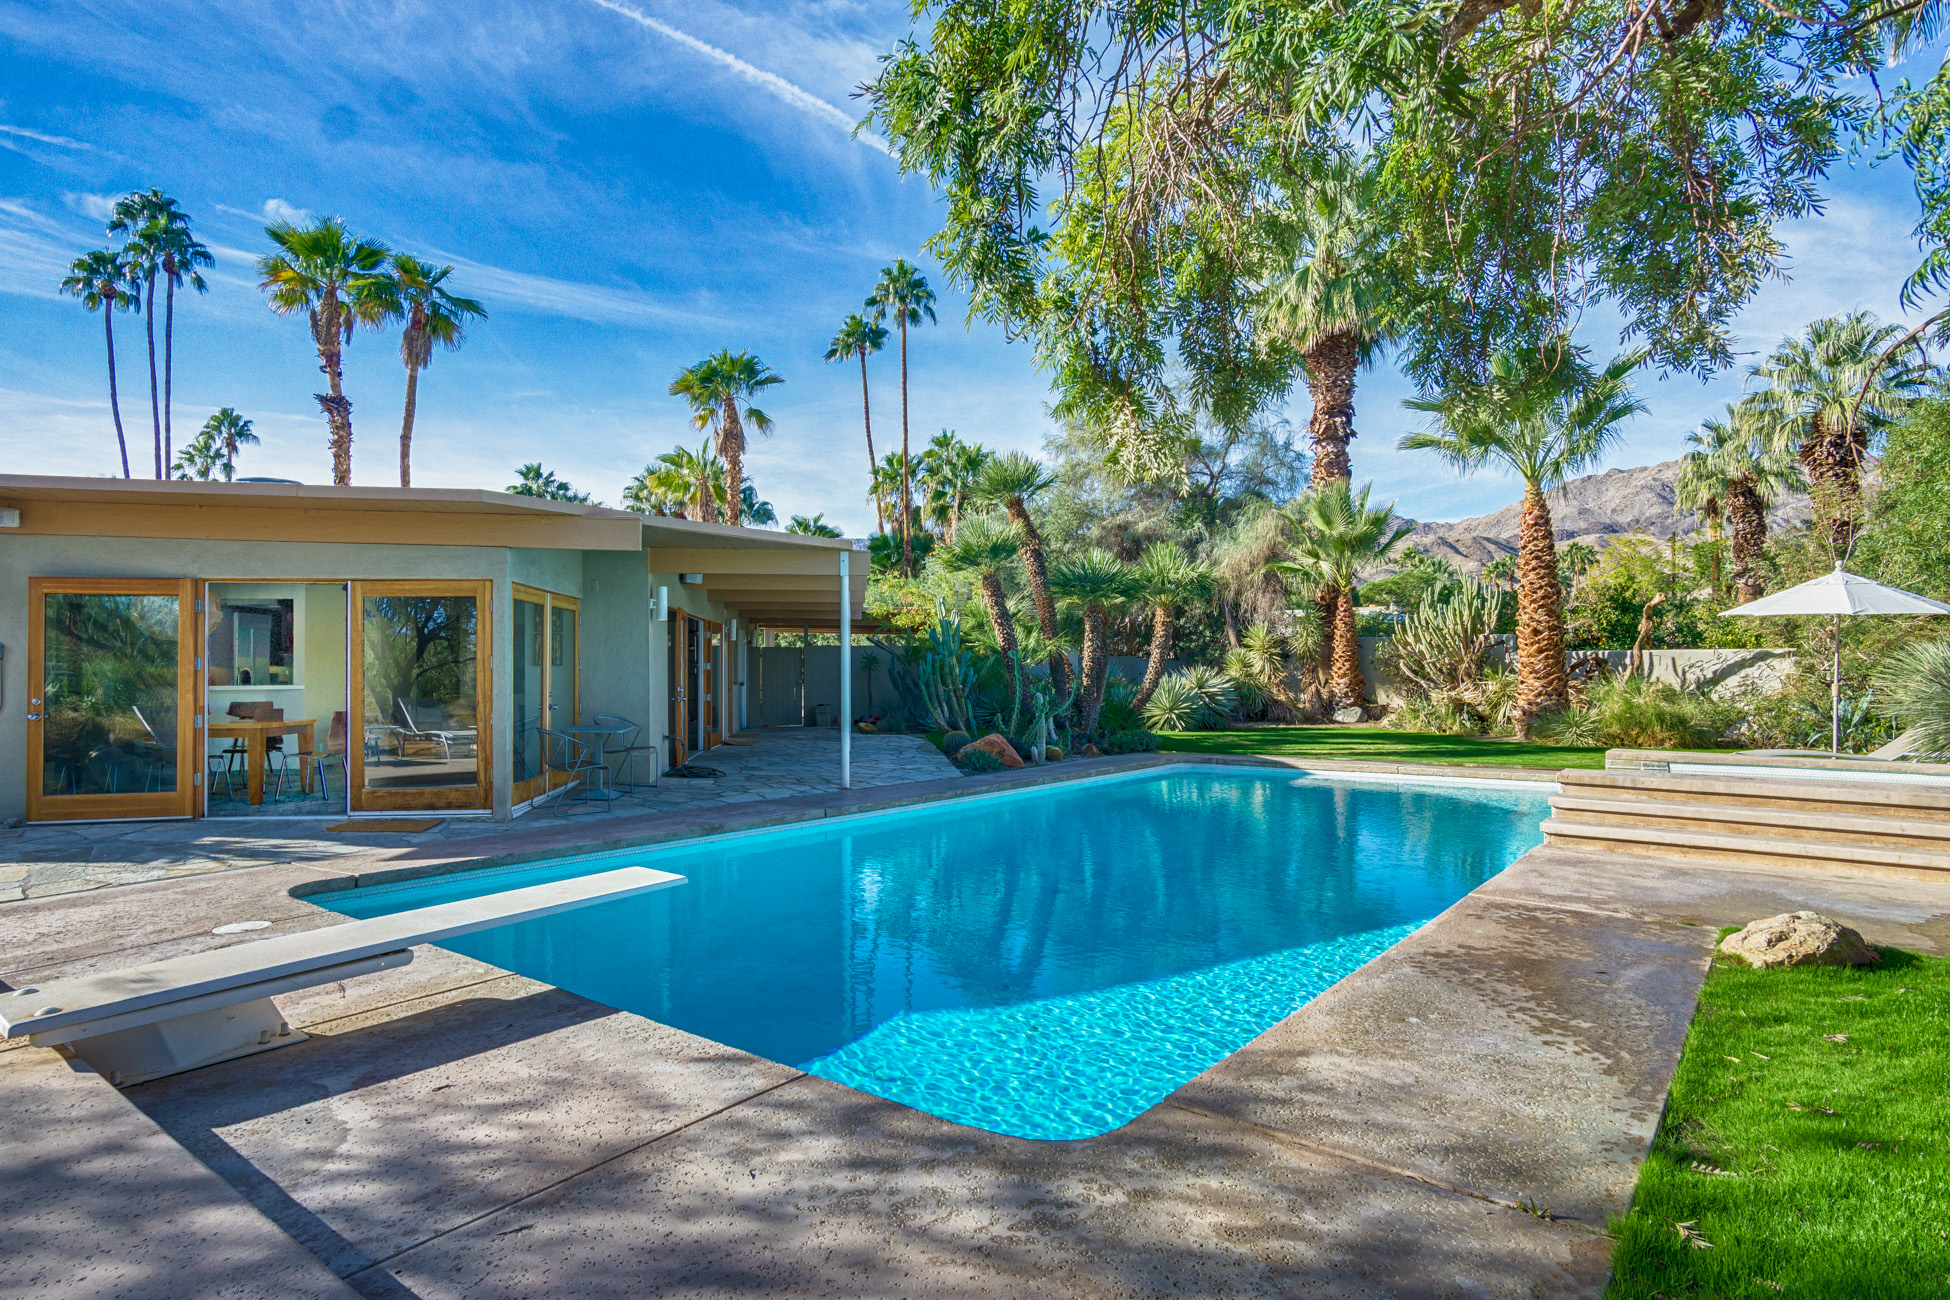 Single Family Home for Sale at Upscale Mid Century Modern 73110 Grapevine Street Palm Desert, California 92260 United States